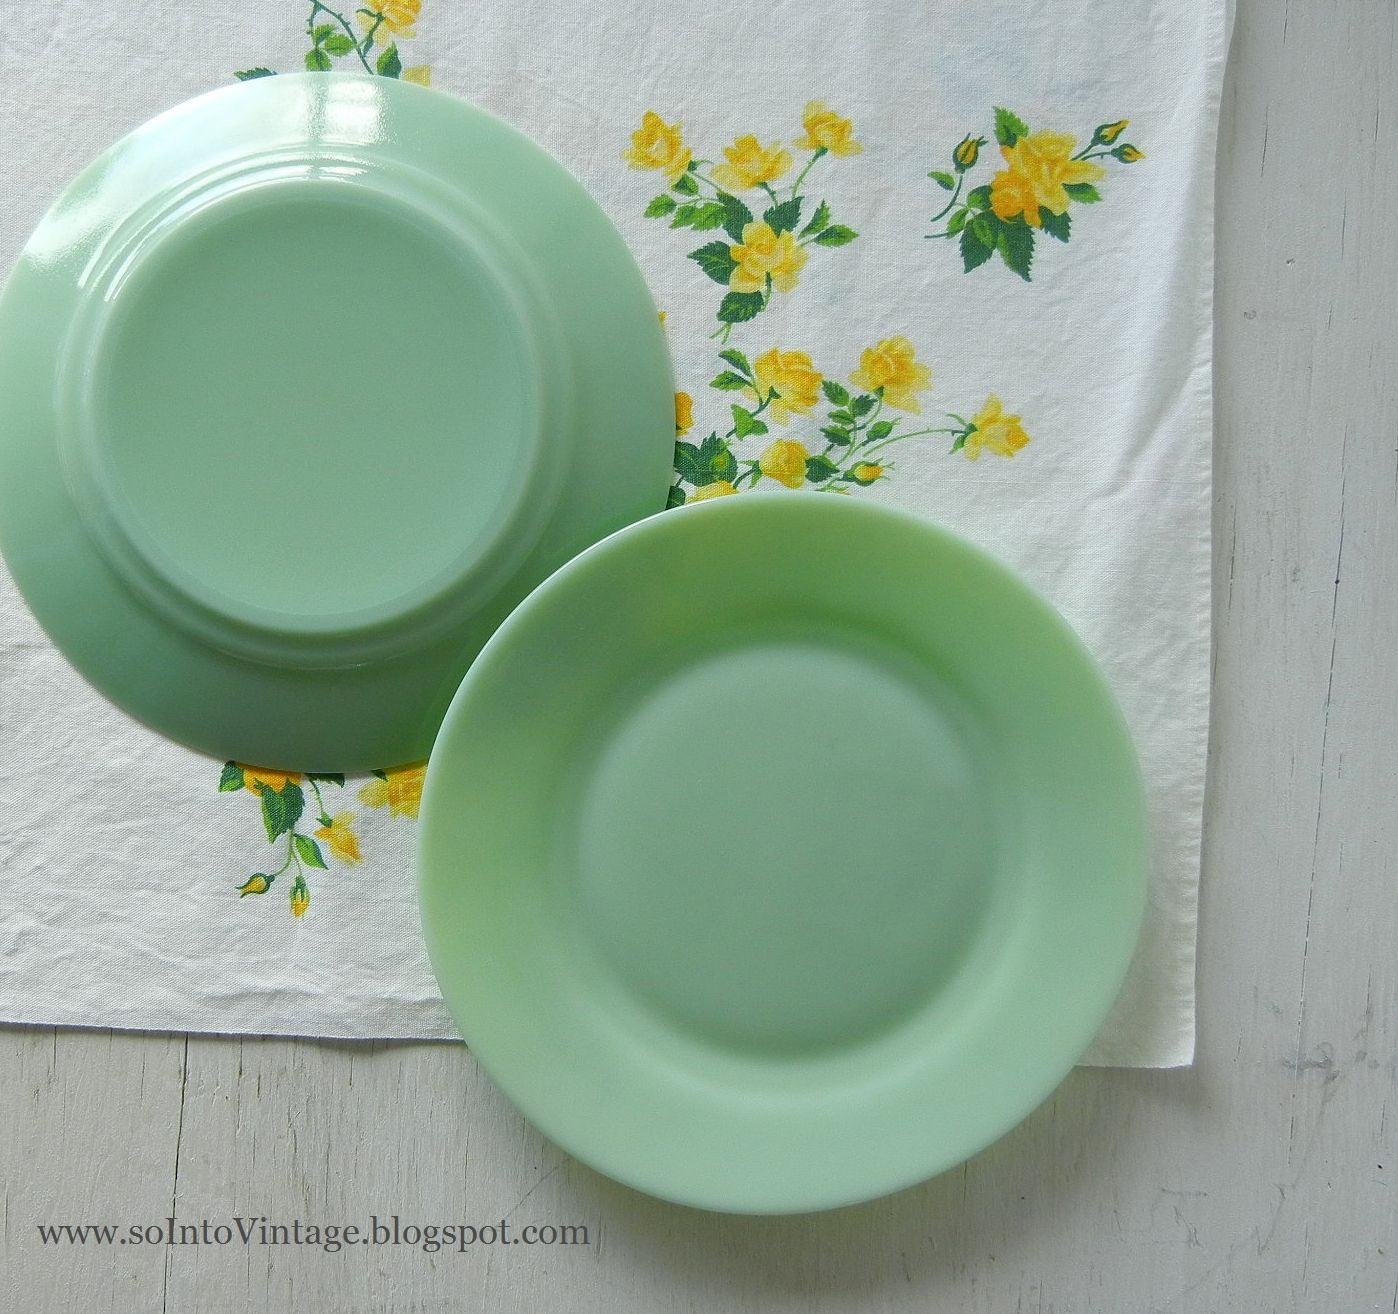 Jadeite enthusiasts please stand up. & Into Vintage: Jadeite enthusiasts please stand up.